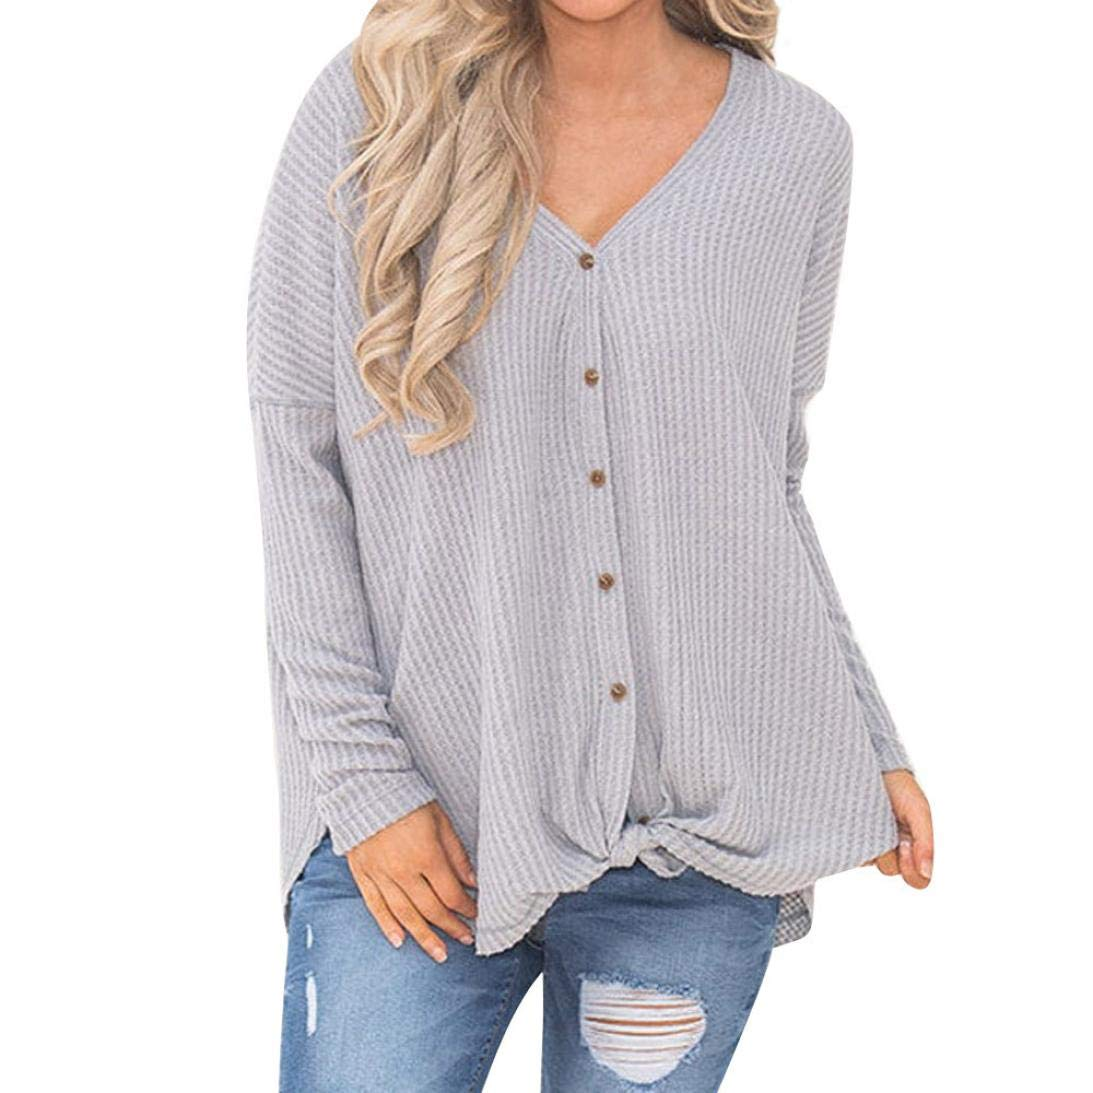 Clearance Gillberry Hot Sales, Womens Loose Knit Tunic Blouse Knot Henley Sweatshirt